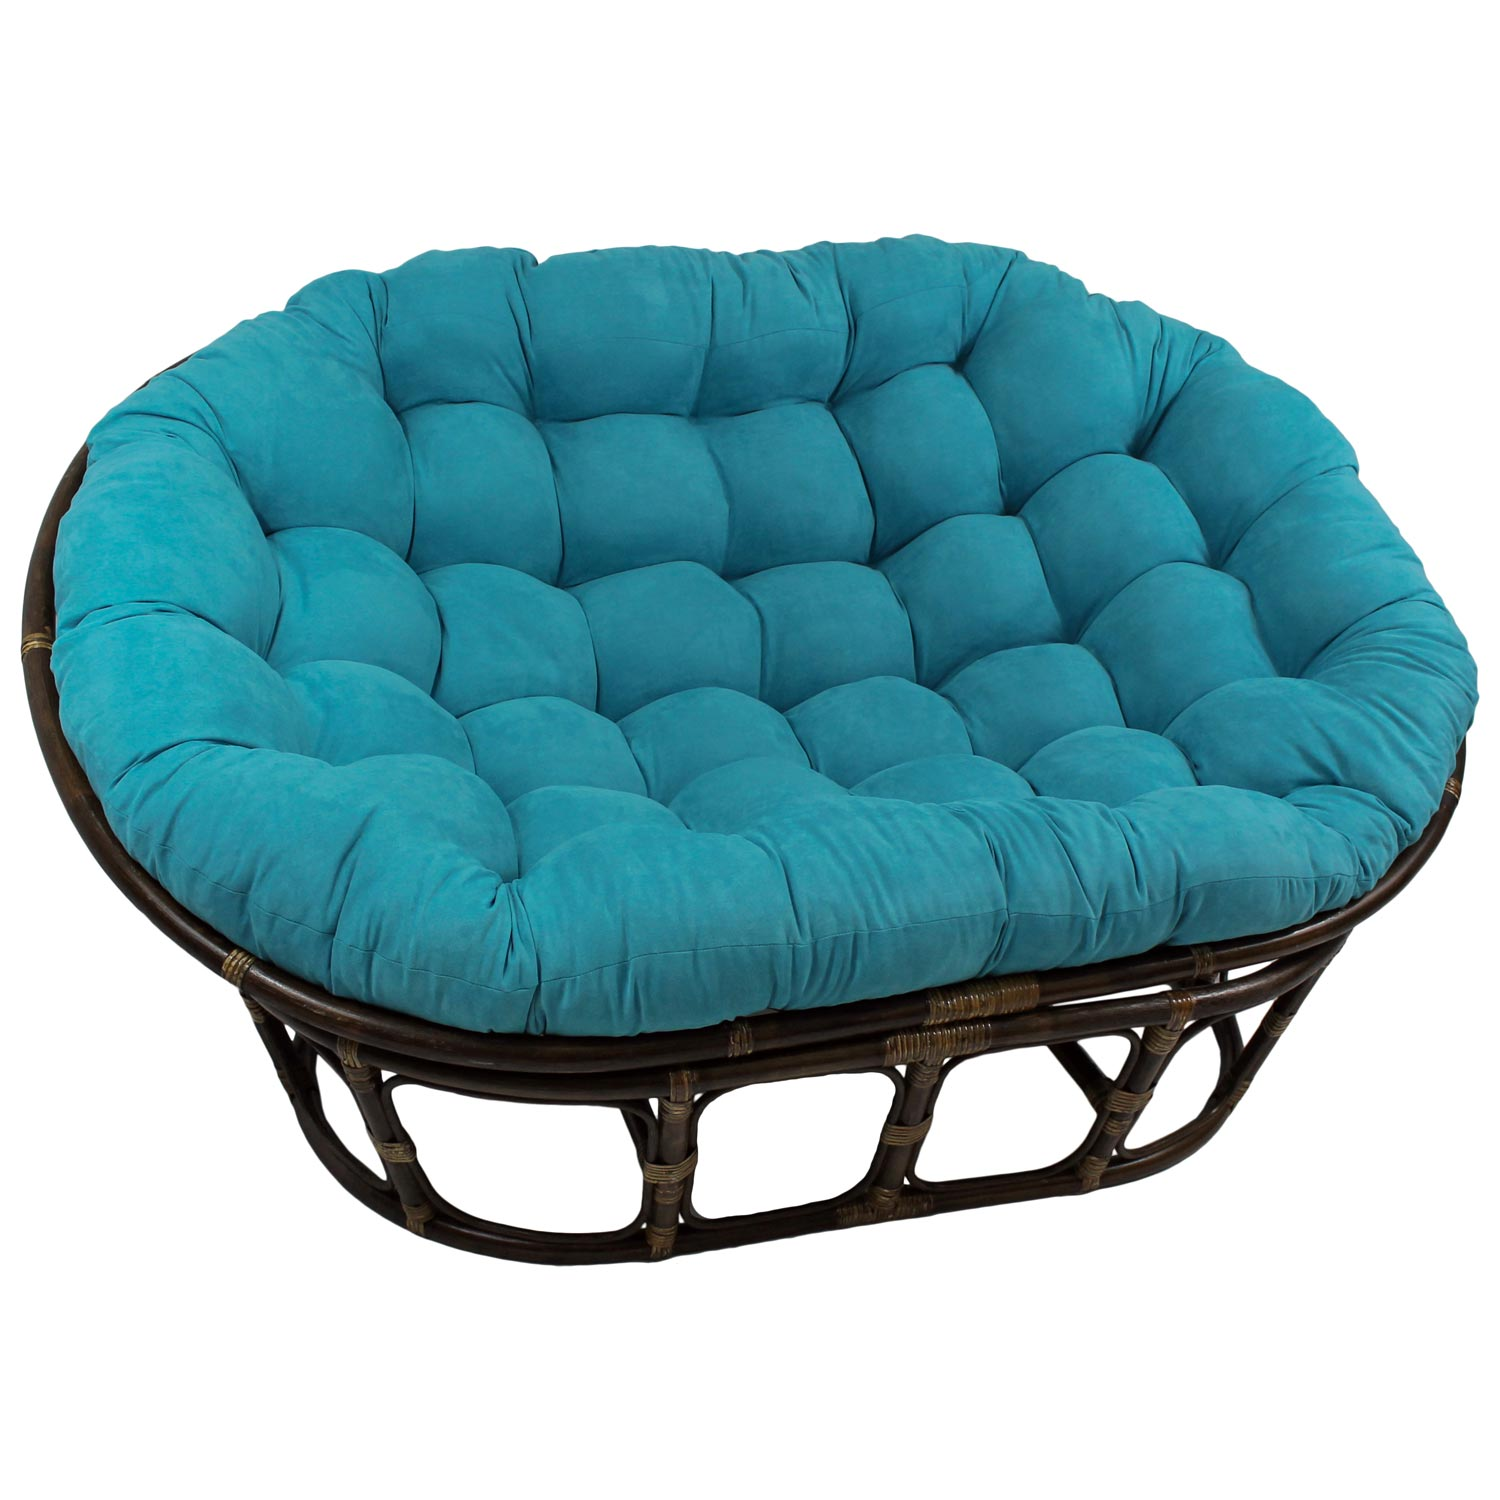 Bali Rattan Double Papasan Chair - Tufted, Microsuede Cushion - INTC-3304-MS